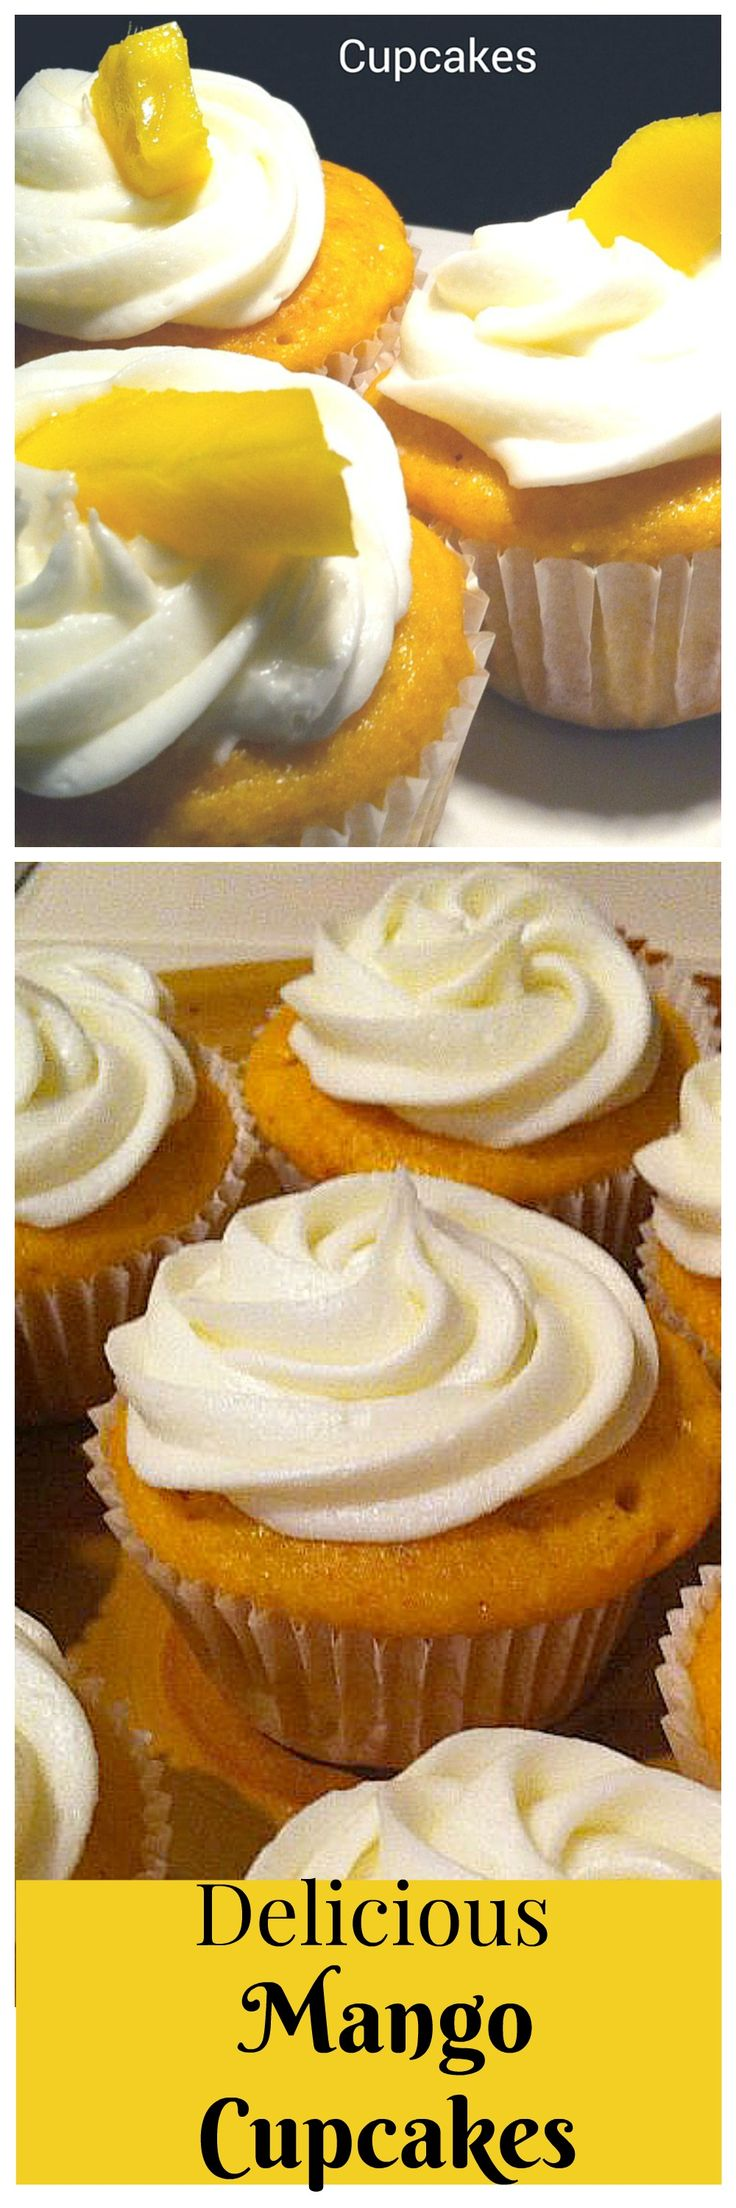 Simple mango cupcakes recipe